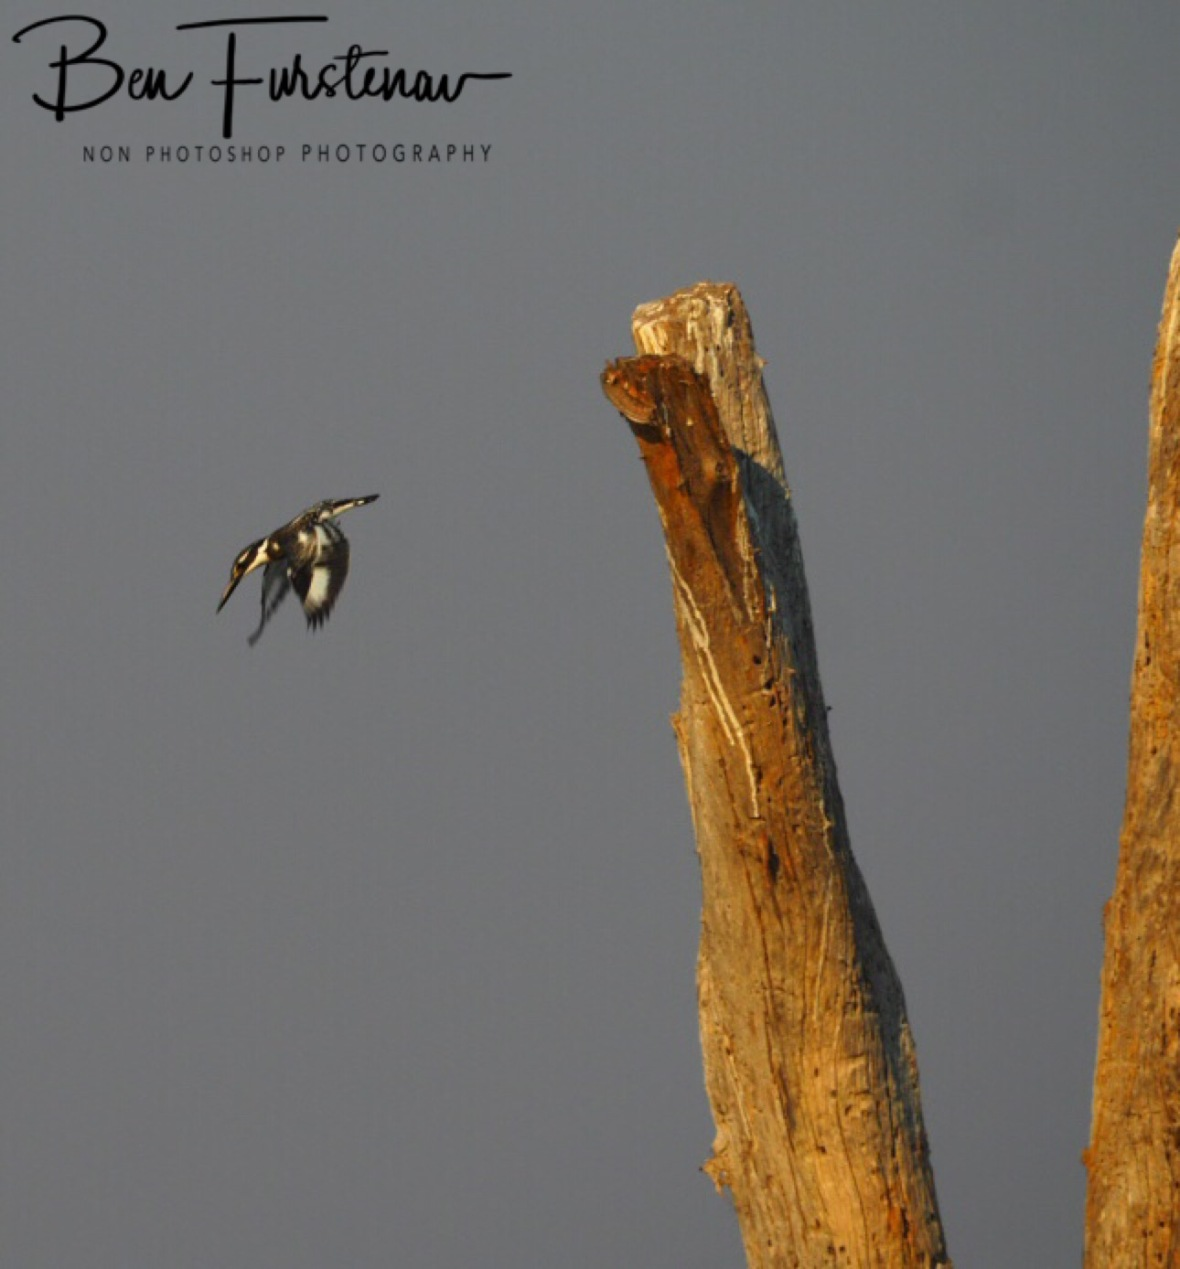 Full flight, Kafue National Park, Zambia